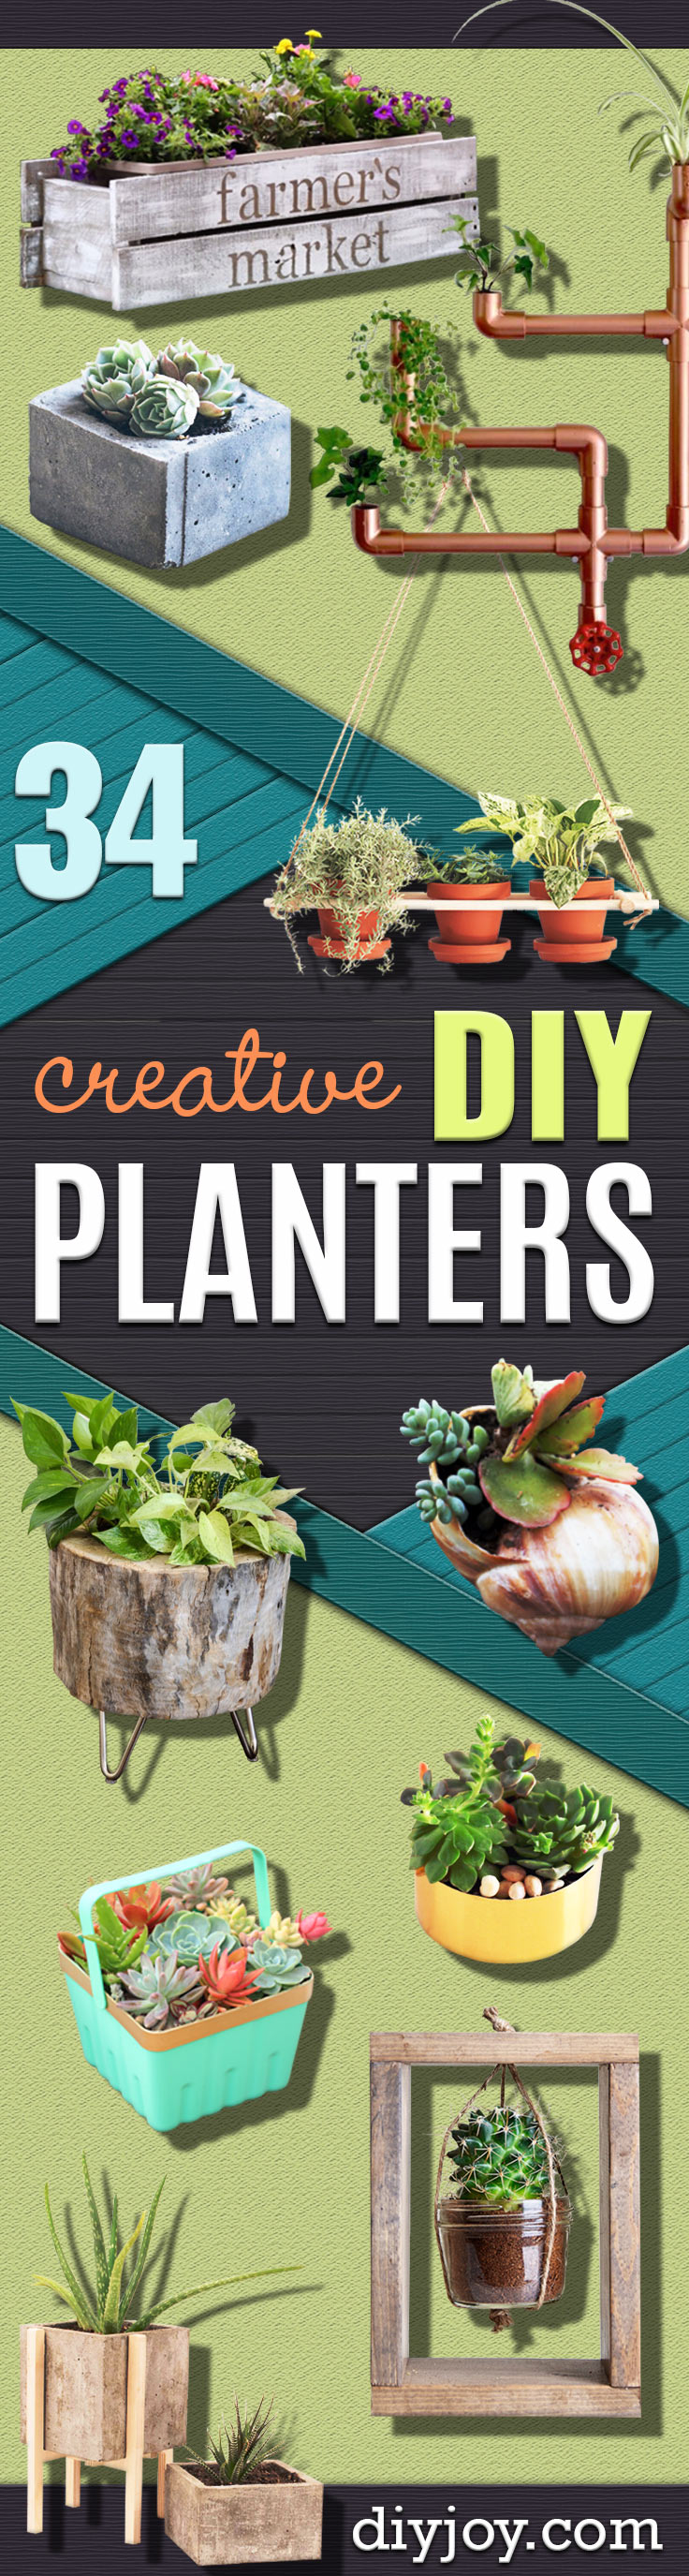 34 creative diy planters you will simply adore creative diy planters best do it yourself planters and crafts you can make for your solutioingenieria Image collections